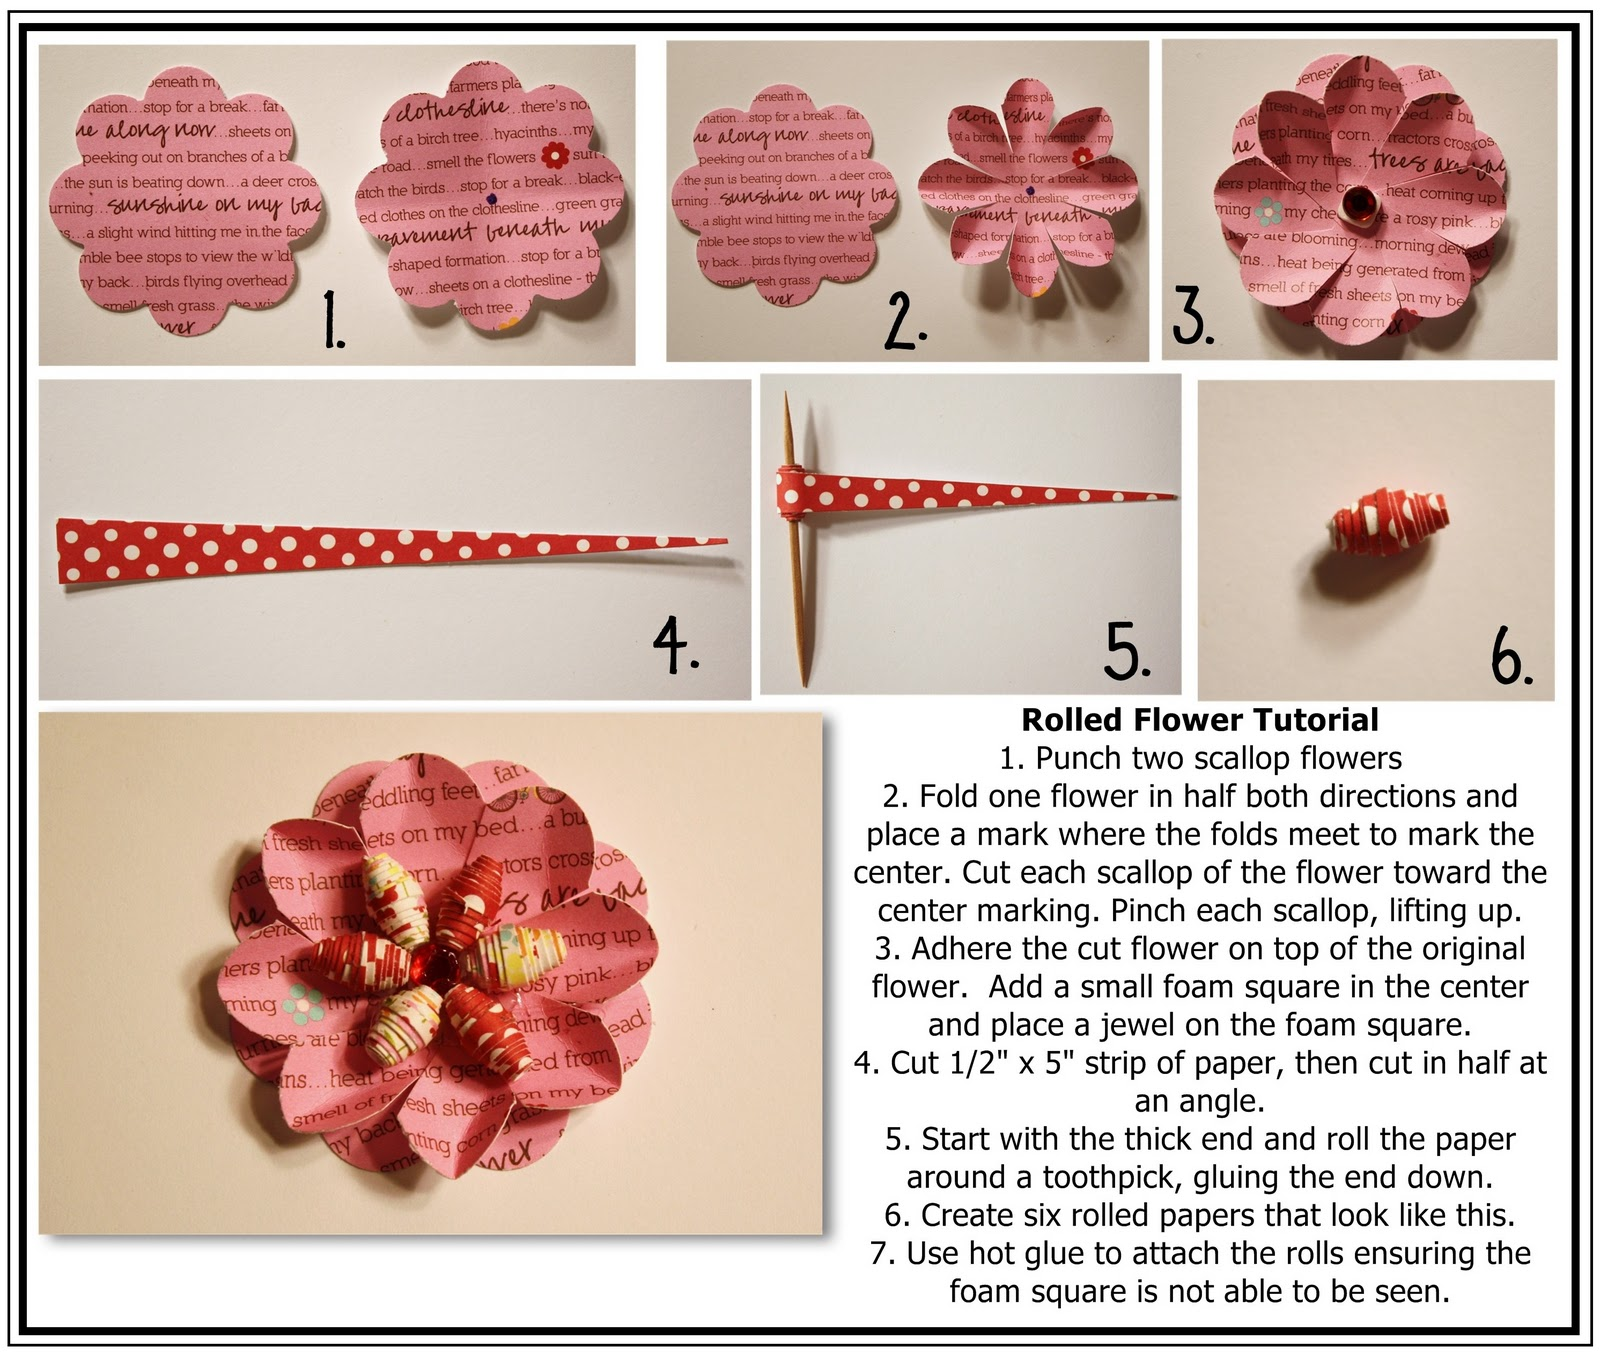 Bits Of Paper Rolled Flower Tutorial